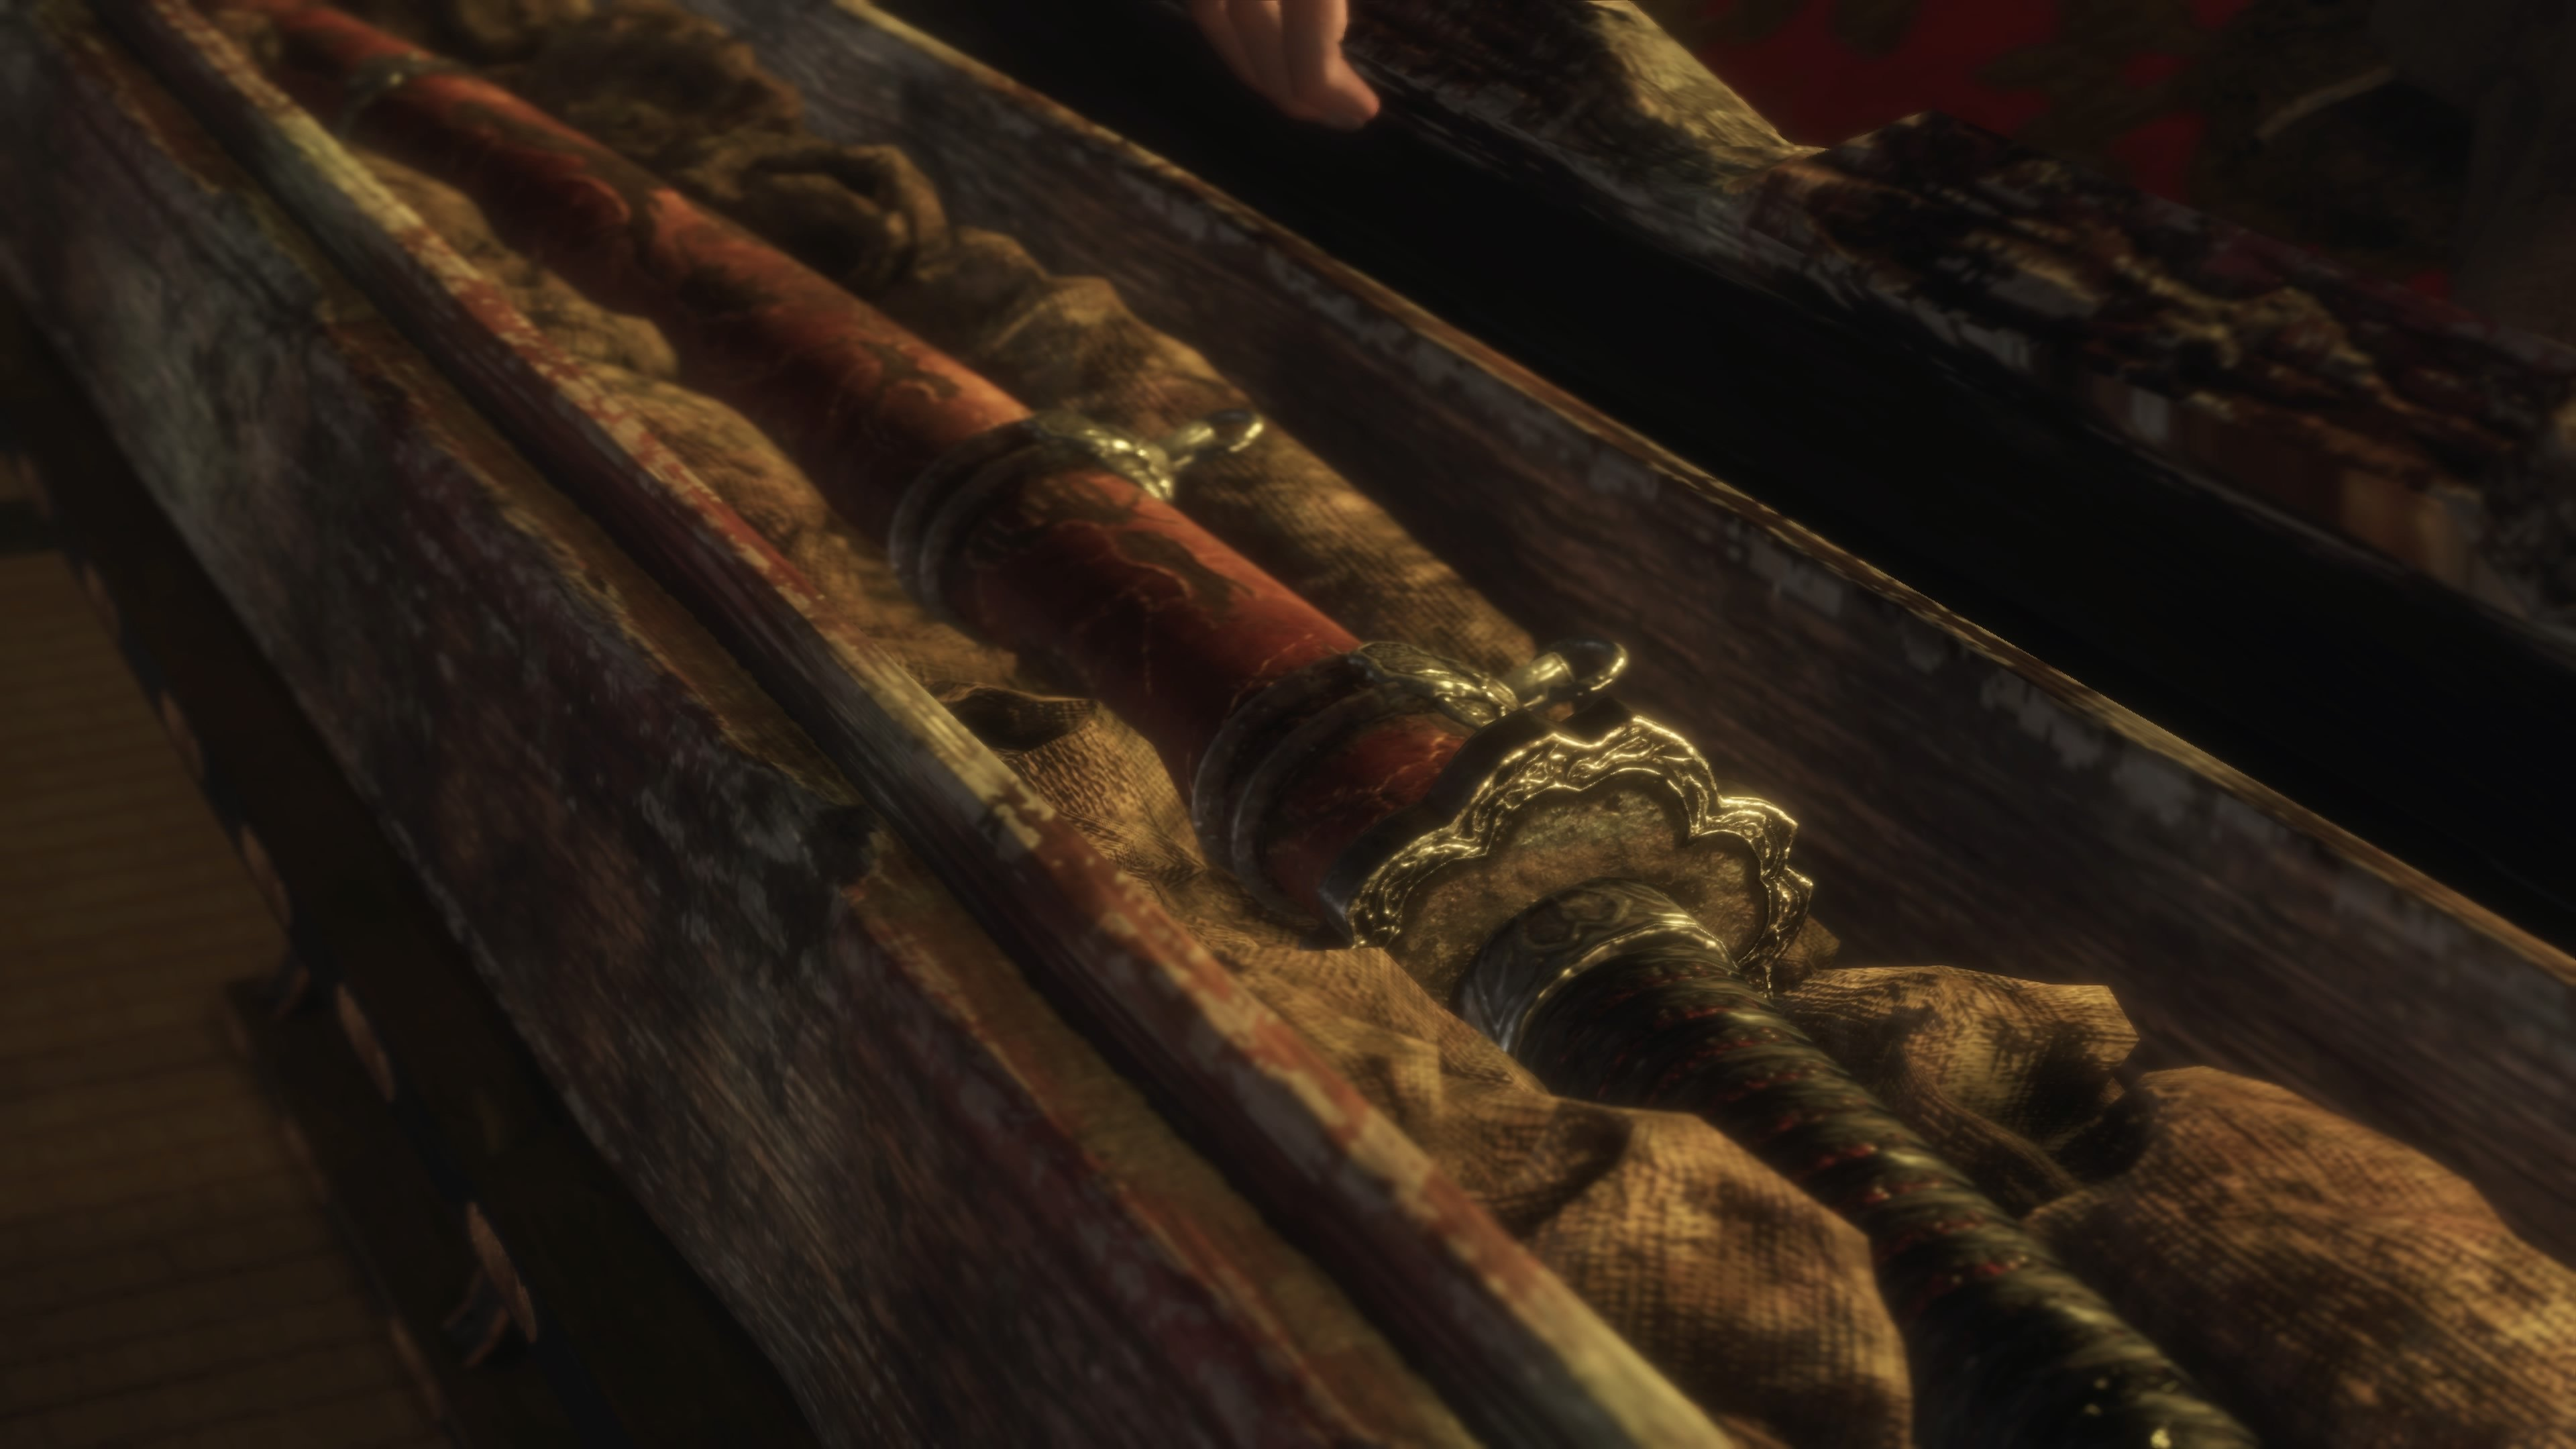 Where to get the Mortal Blade in Sekiro: Shadows Die Twice